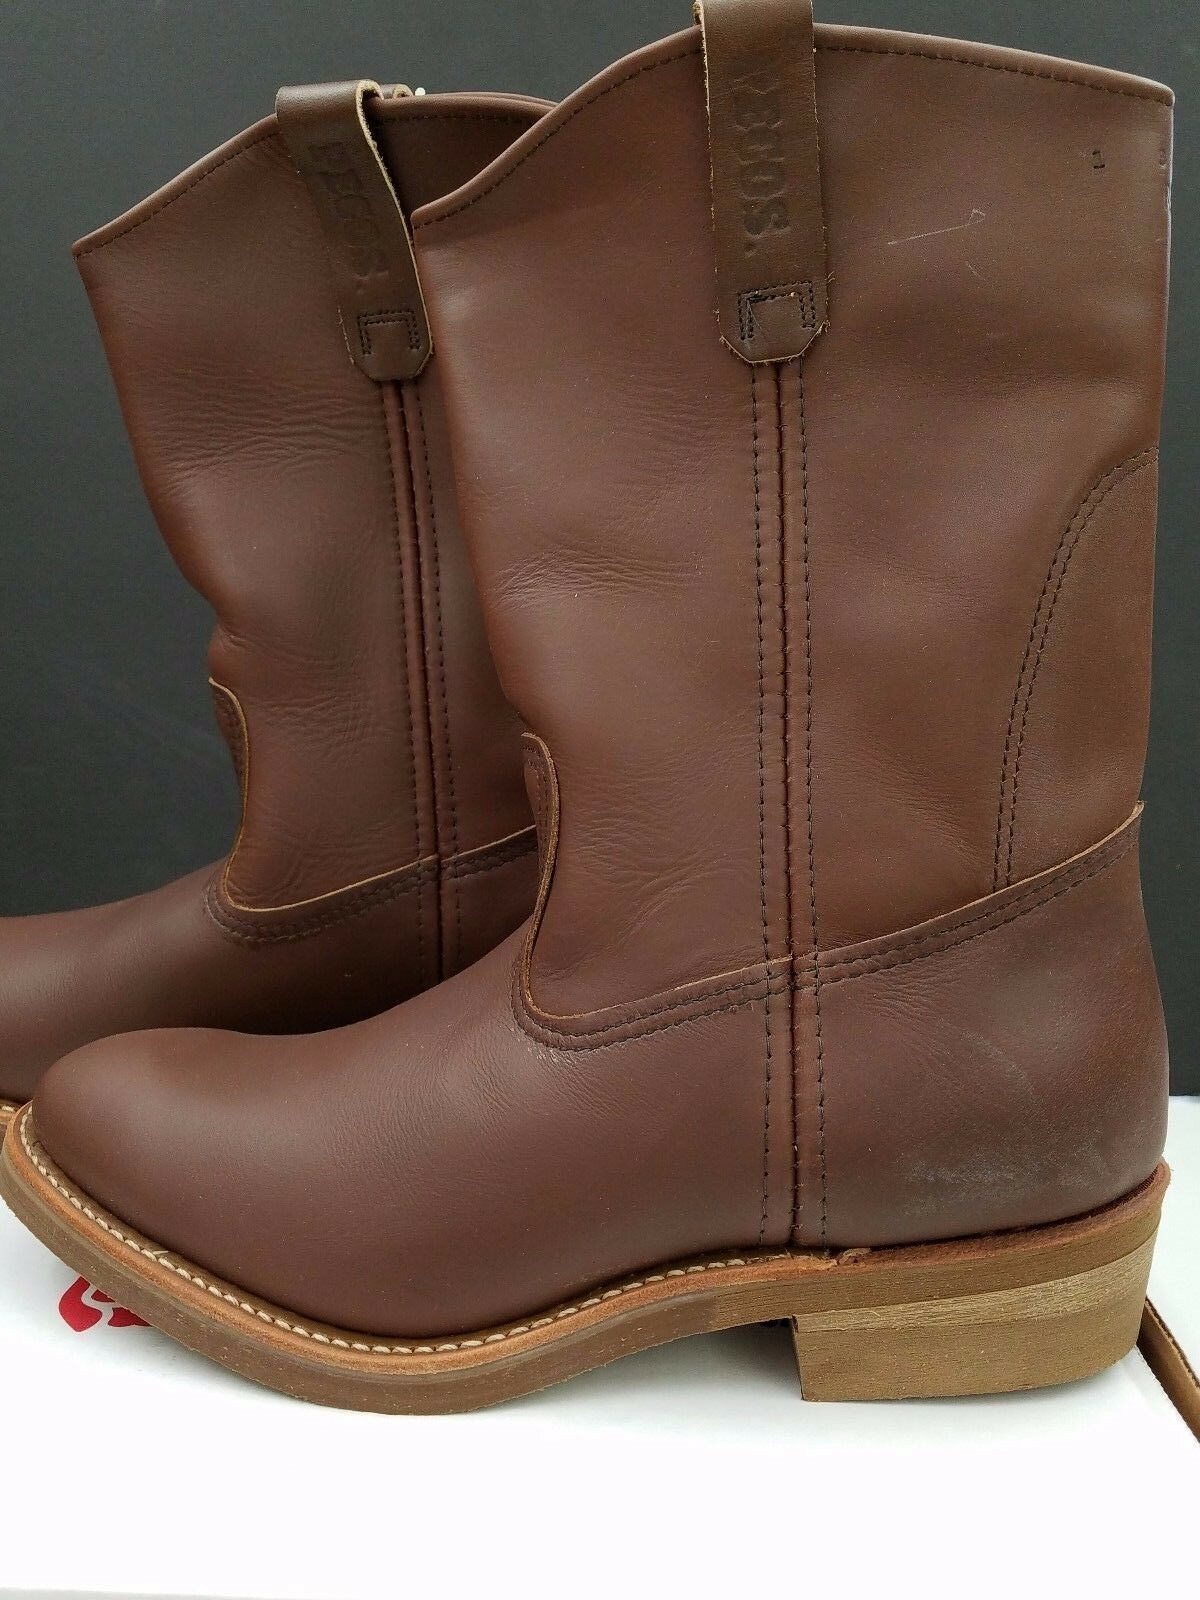 Red Wing Pull on Style 1155 Pecos Pull-on Size 11.5 C New in box Made in USA